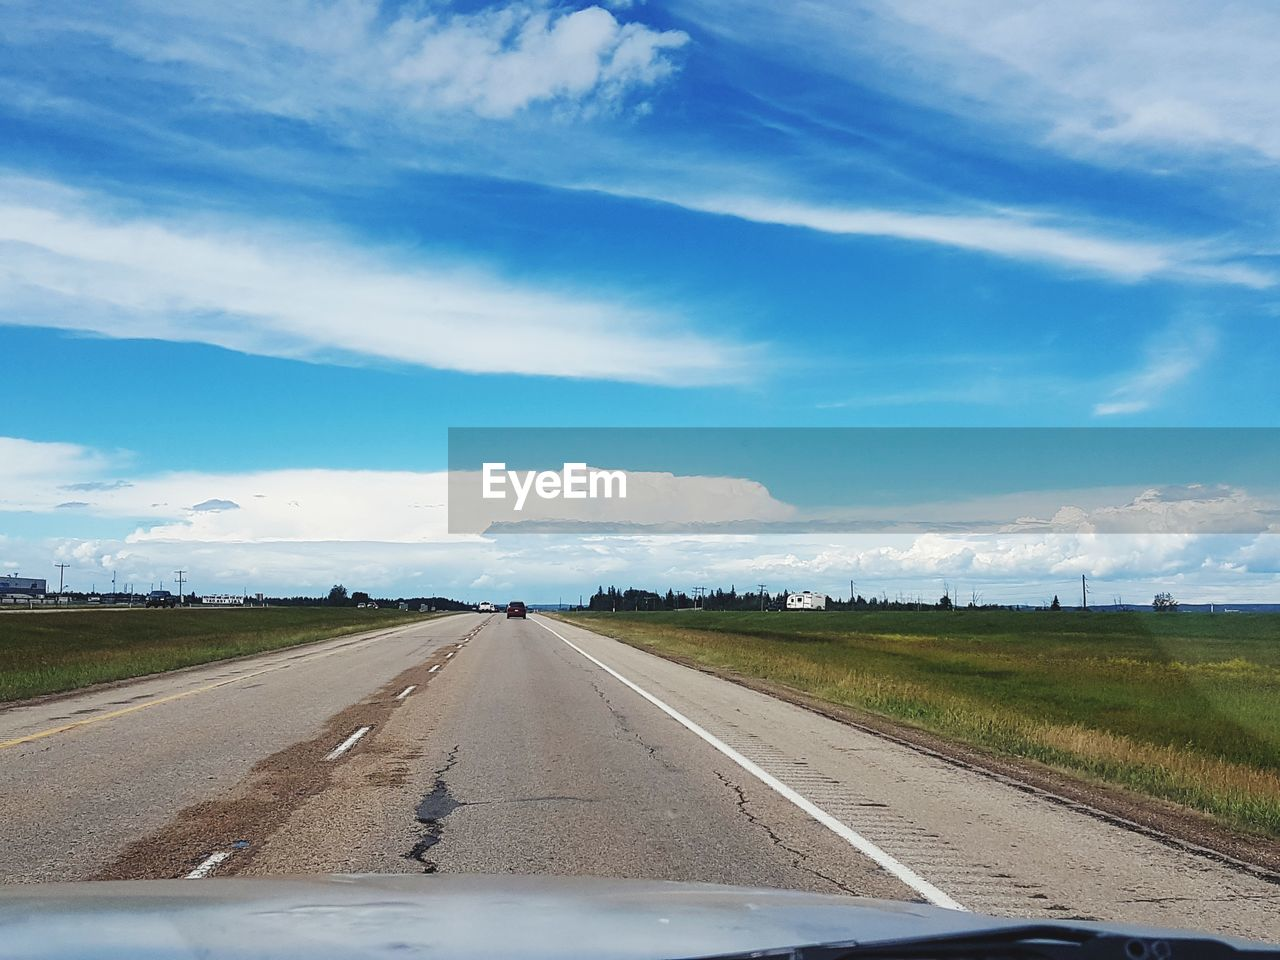 sky, transportation, cloud - sky, road, car, land vehicle, vehicle interior, mode of transportation, motor vehicle, windshield, nature, glass - material, direction, no people, transparent, diminishing perspective, the way forward, car interior, non-urban scene, environment, car point of view, road trip